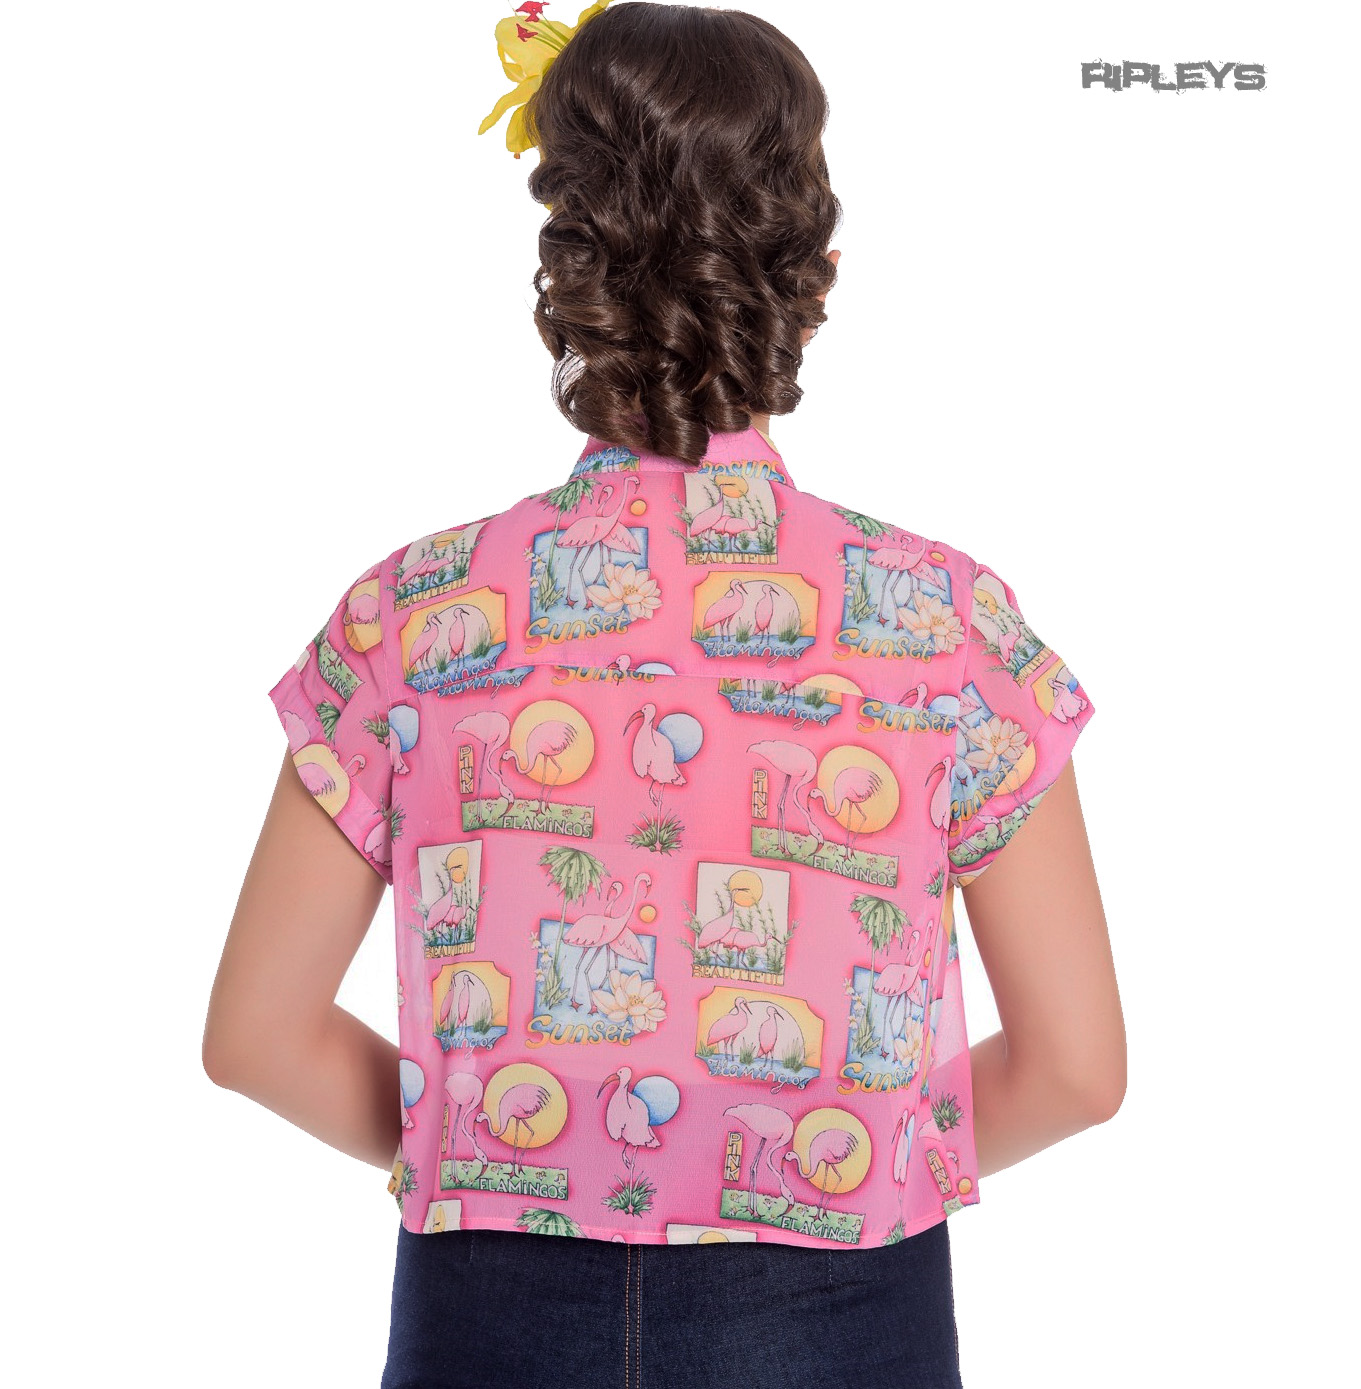 thumbnail 27 - Hell Bunny 50s Retro Top Pink Flamingo MAXINE Cropped Blouse Shirt All Sizes